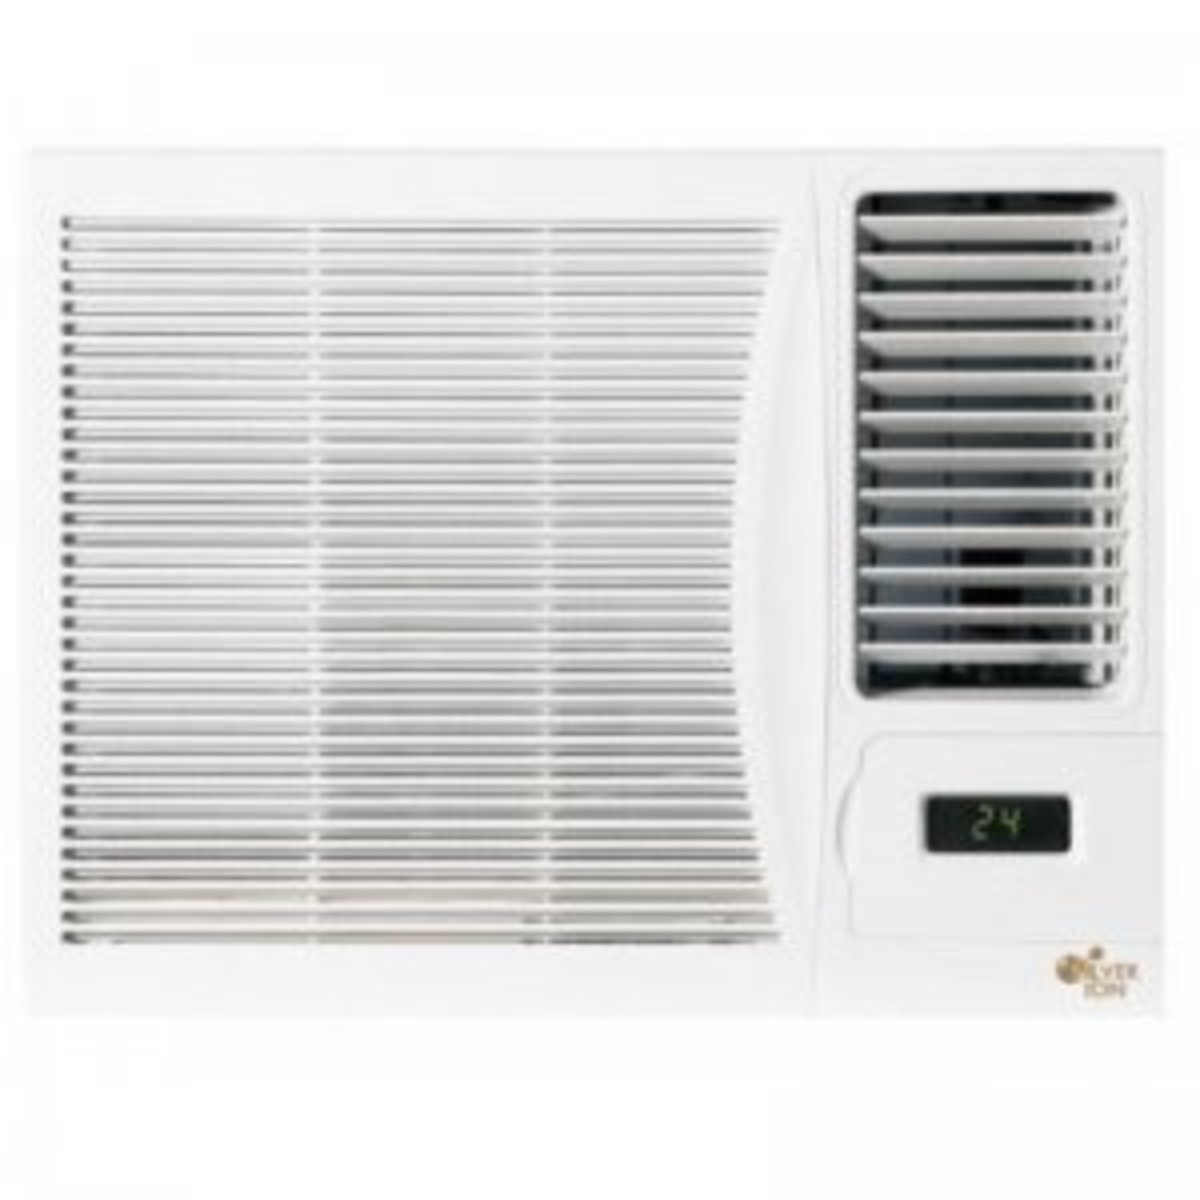 AWA07510R 3/4HP Window Type Air Conditioner with Remote Control  Hong Kong Warranty Genuine Products